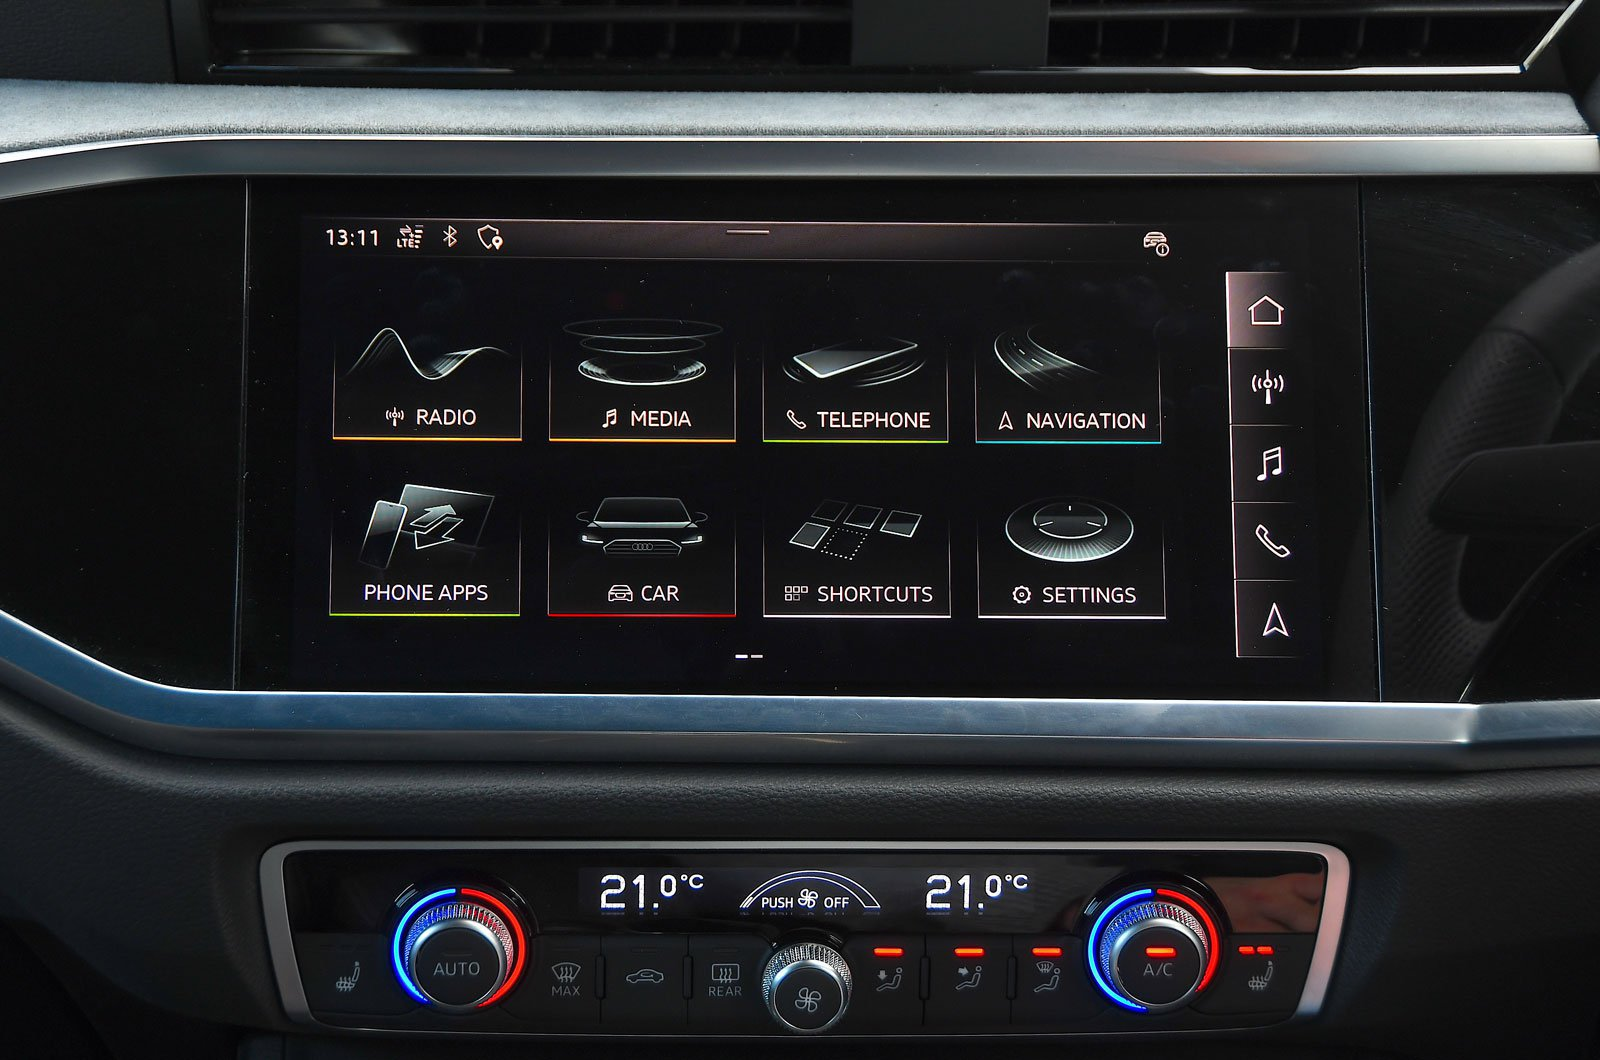 Audi infotainment screen